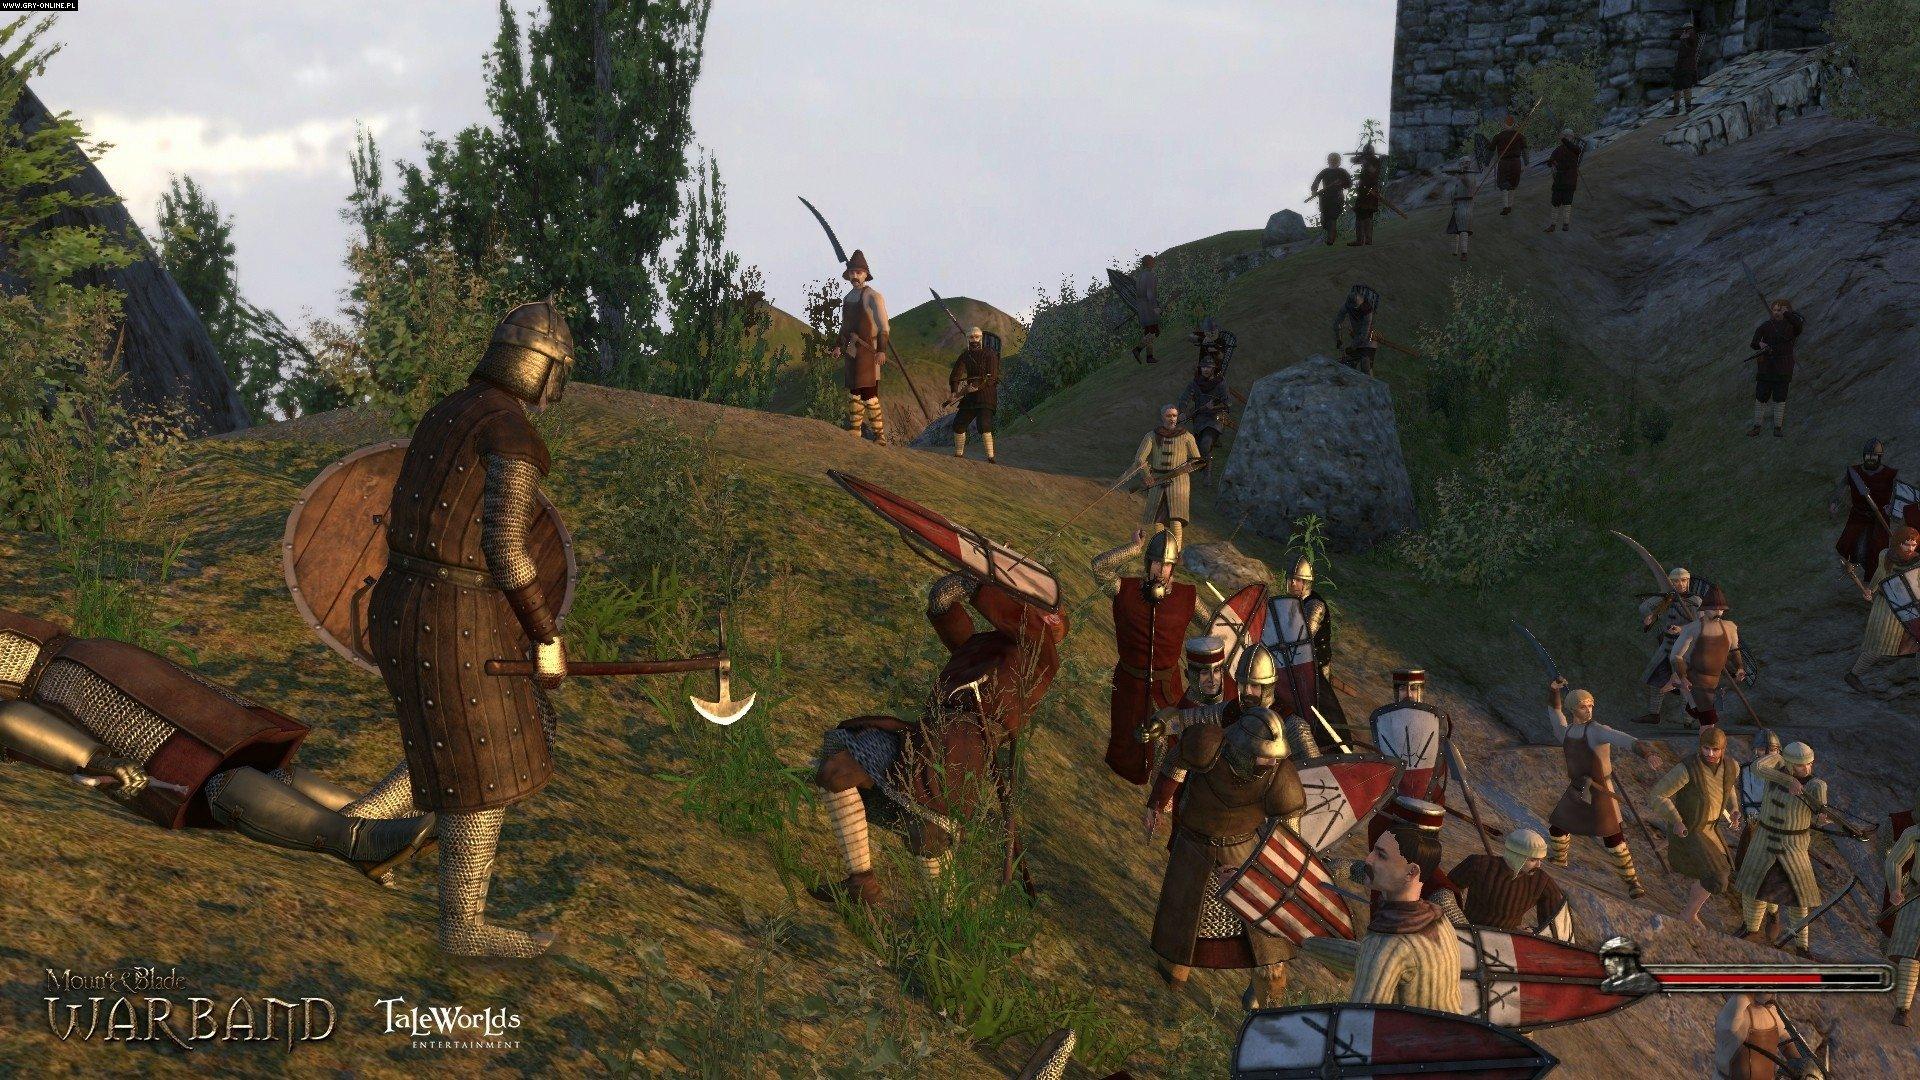 Mount & Blade: Warband PS4, XONE Gry Screen 1/79, TaleWorlds, Paradox Interactive